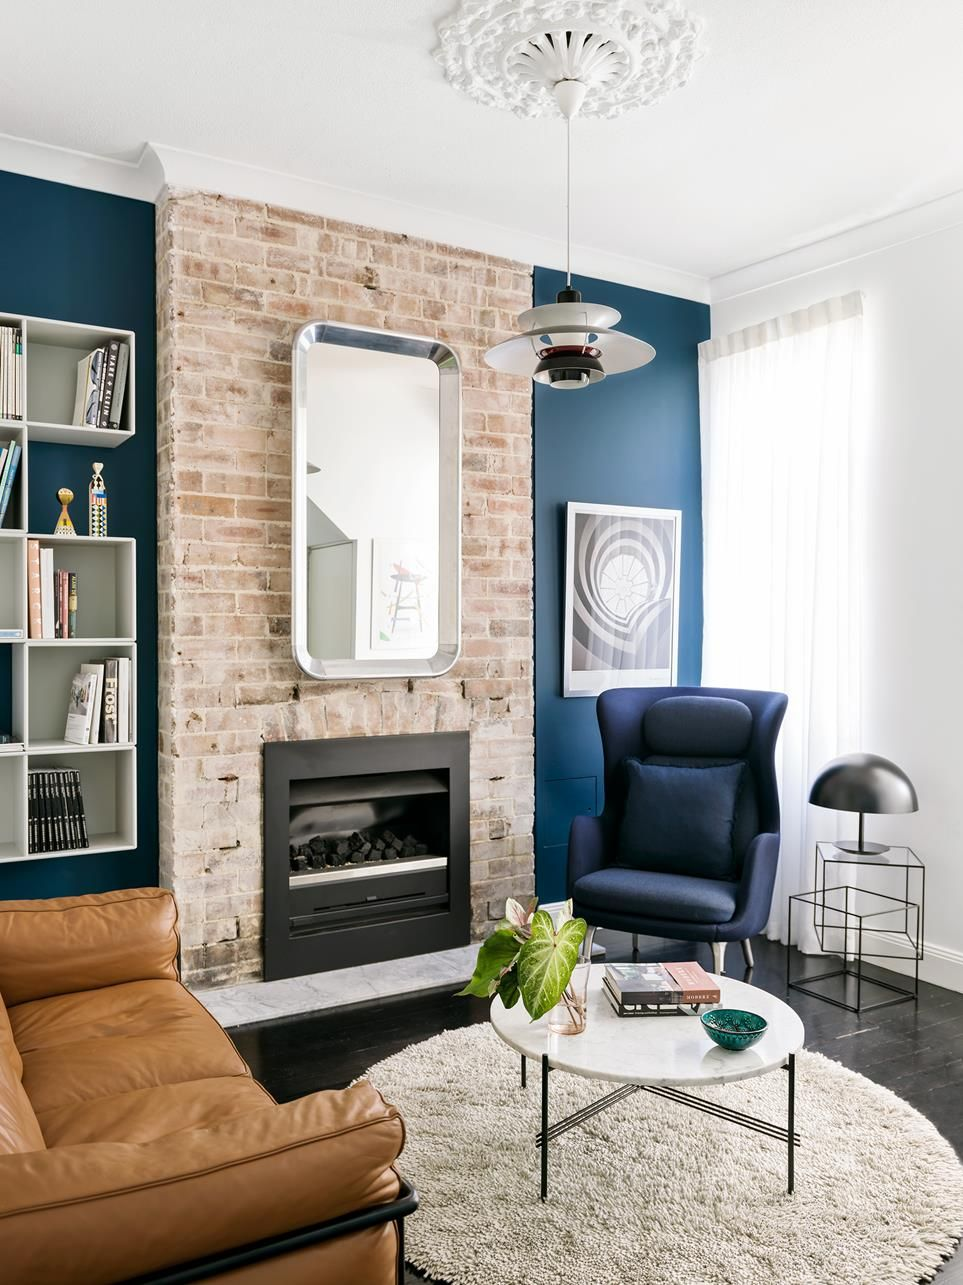 Importer of European furniture brands, Richard Munao of Cult and wife Lisa renovated their inner-city 1890s house, two doors from his showroom.